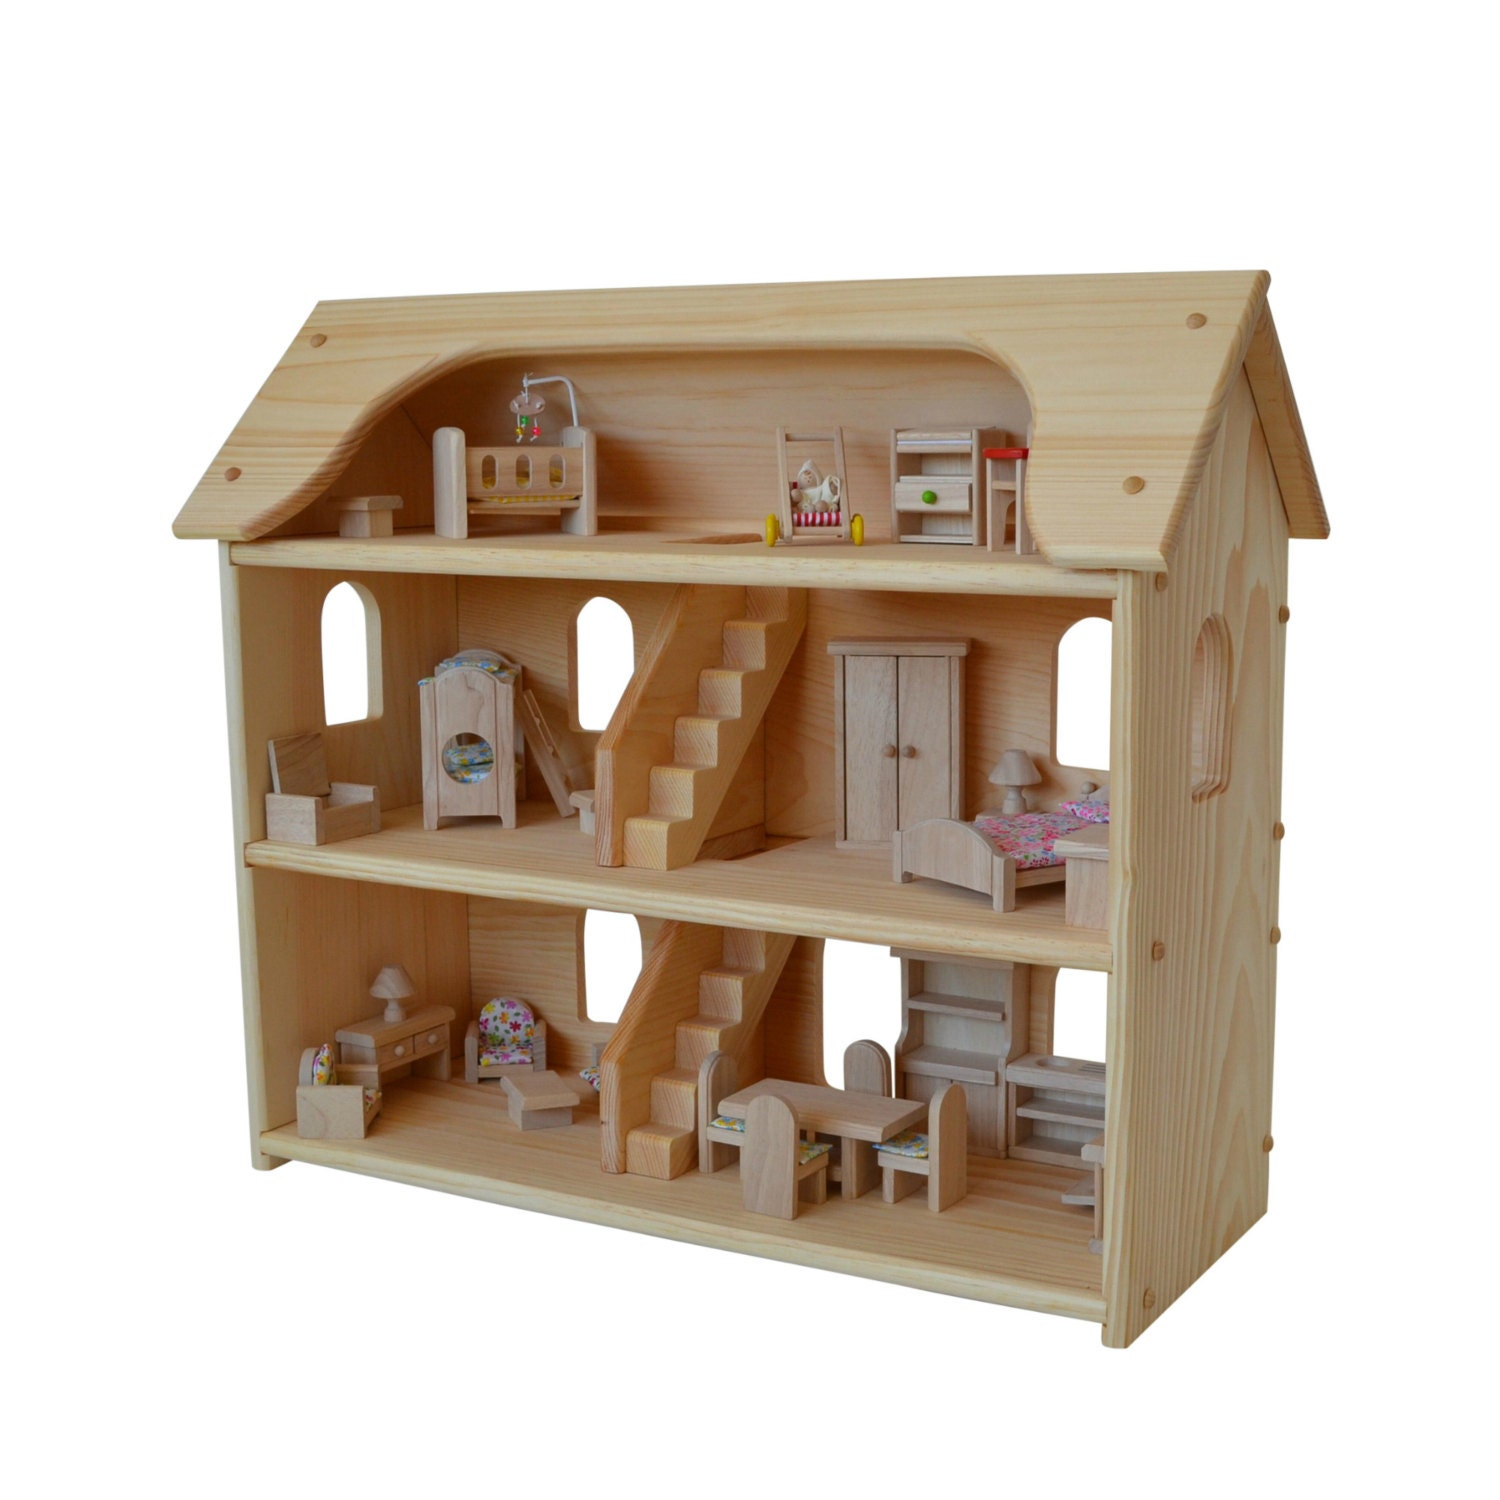 handcrafted natural wooden toy dollhouse set waldorf. Black Bedroom Furniture Sets. Home Design Ideas